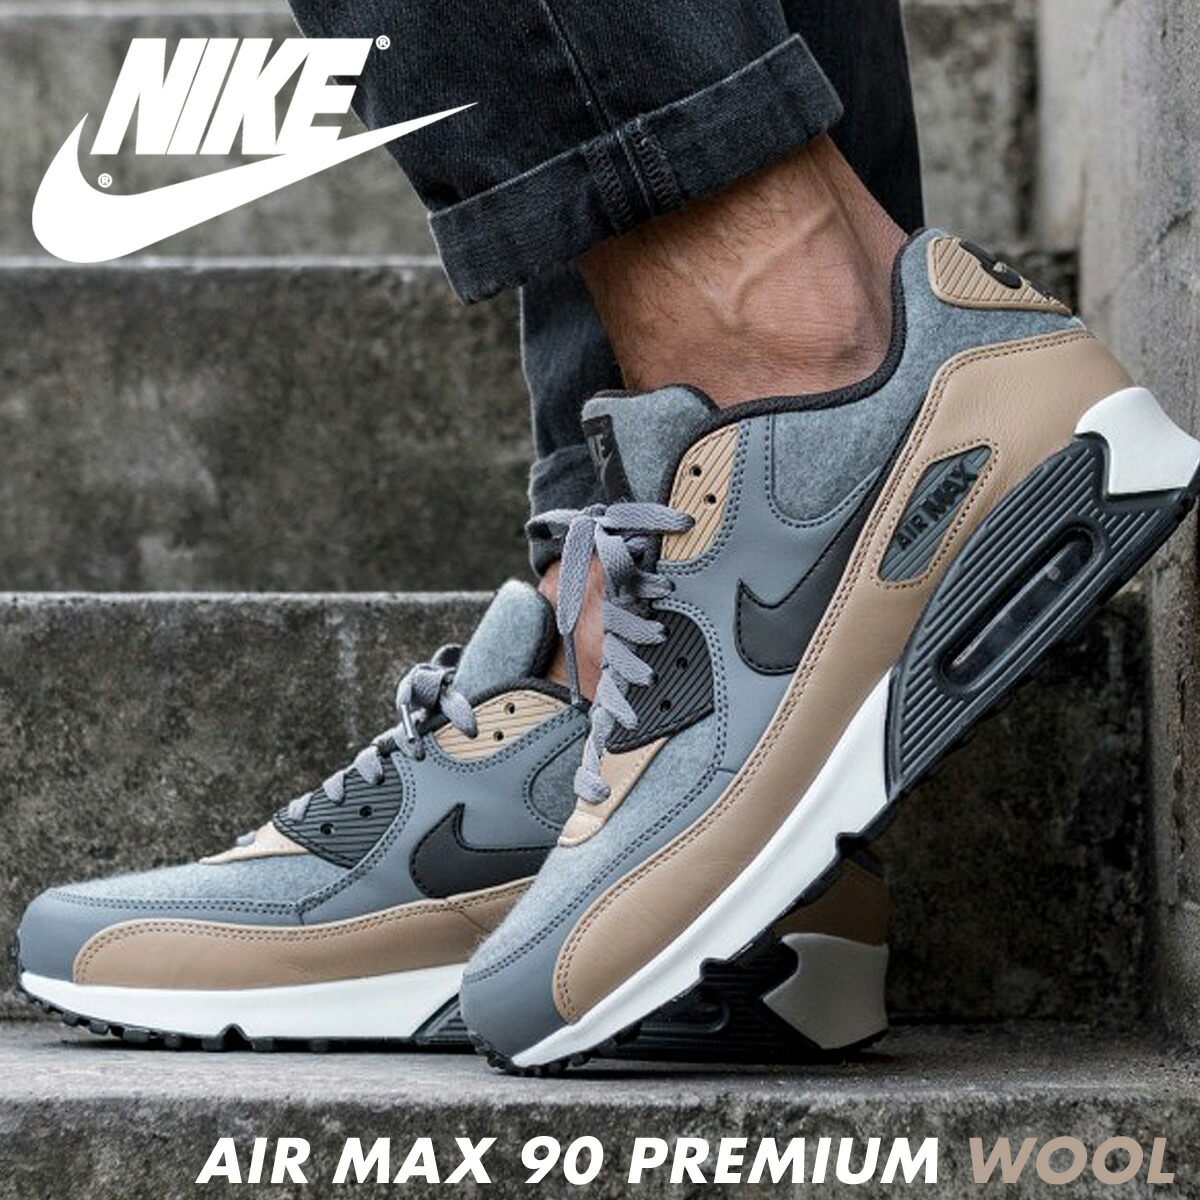 NIKE AIR MAX 90 PREMIUM WOOL Kie Ney AMAX 90 sneakers 700,155 010 men's shoes gray [load planned Shinnyu load in reservation product 1013 containing]